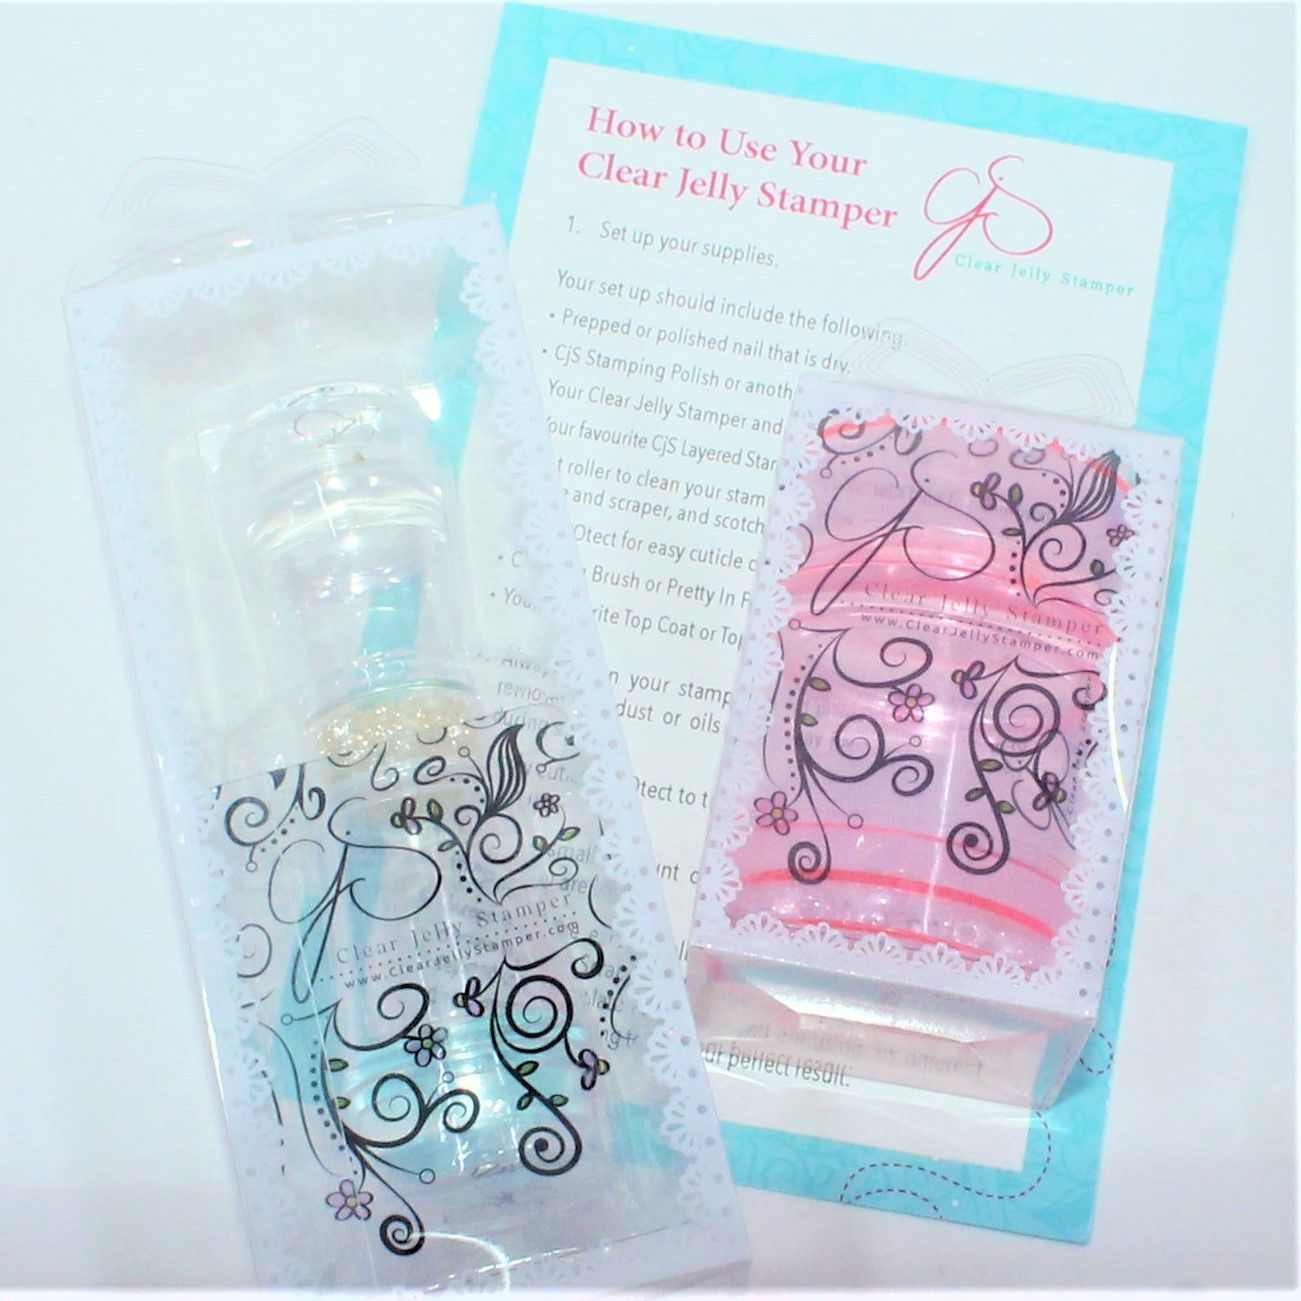 Clear Jelly Stampers